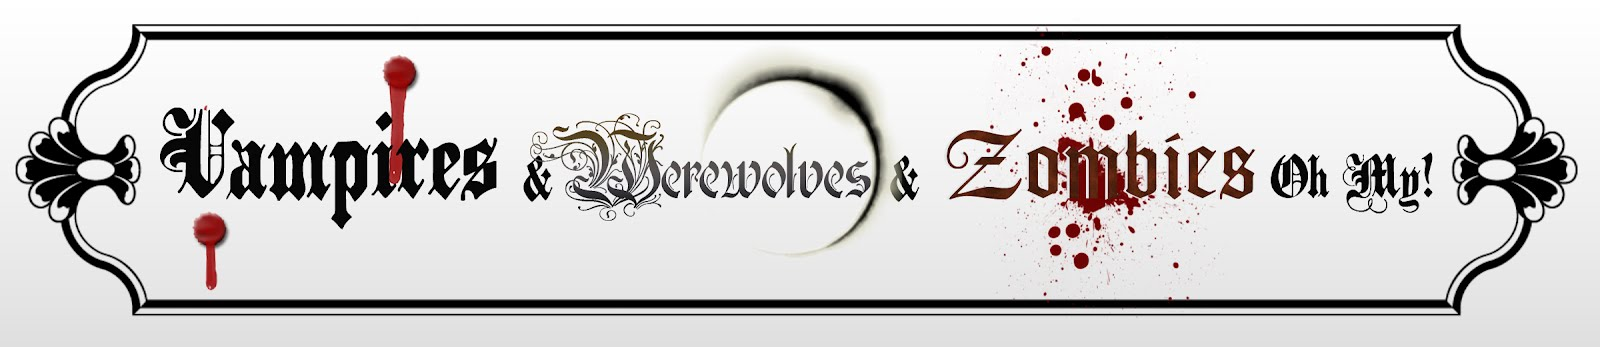 Vampires & Werewolves & Zombies Oh My!